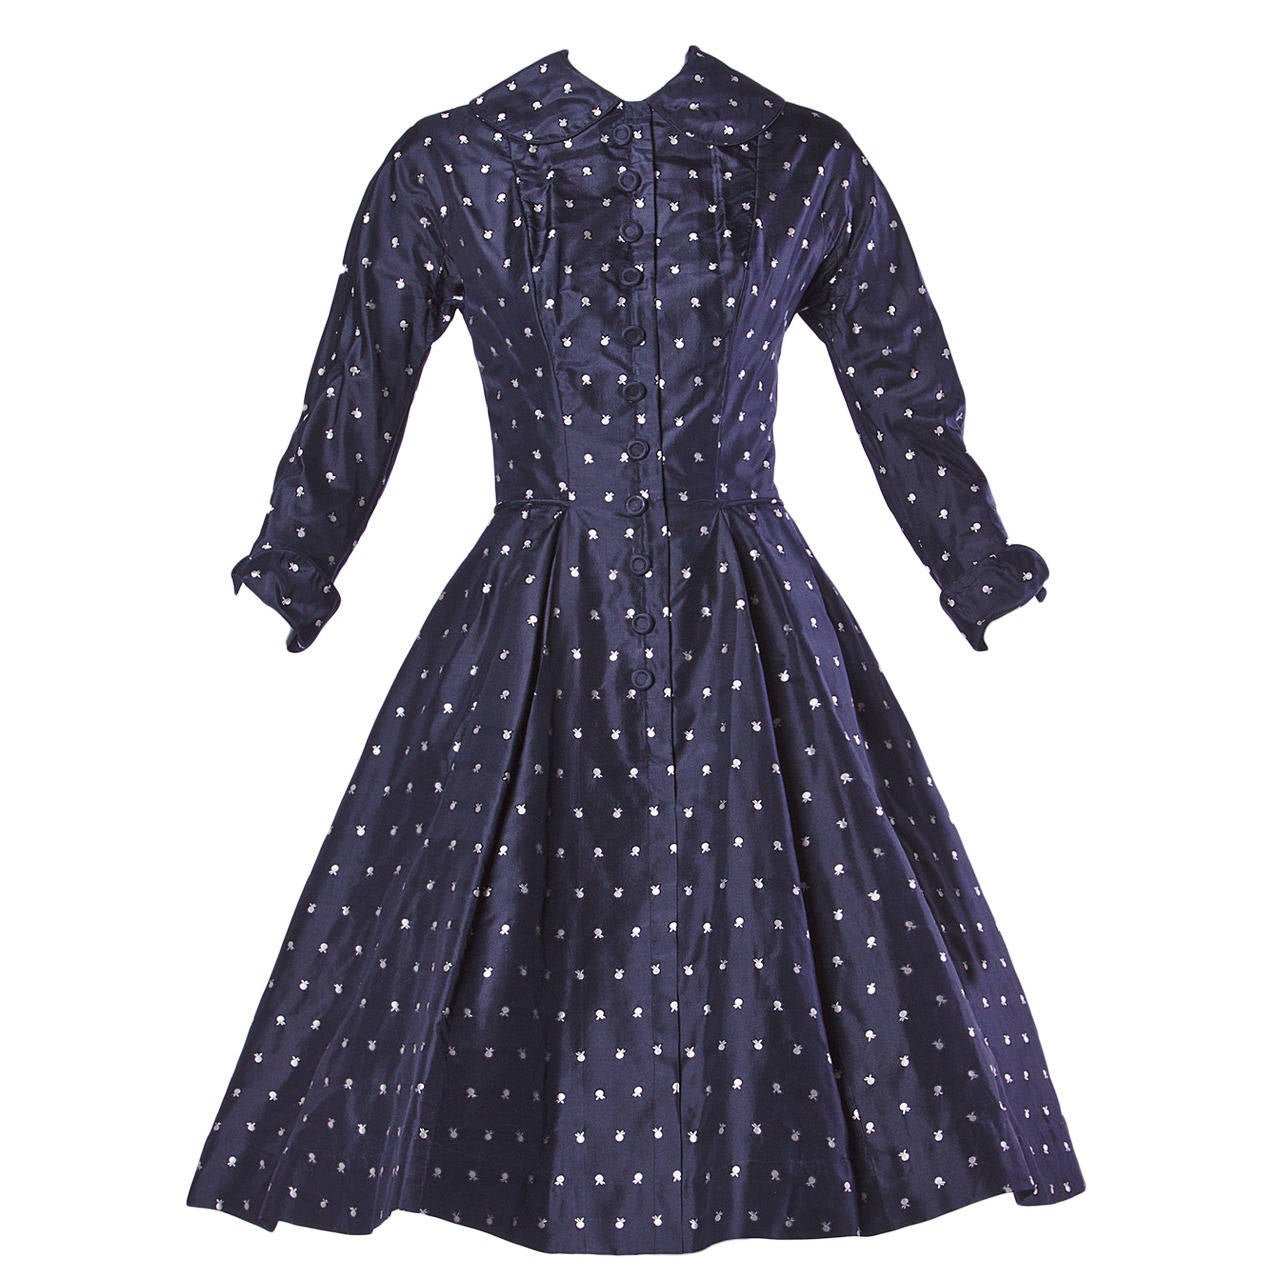 Ceil Chapman Vintage 1950s 50s Fruit Print Navy Silk Dress with Box Pleats 1